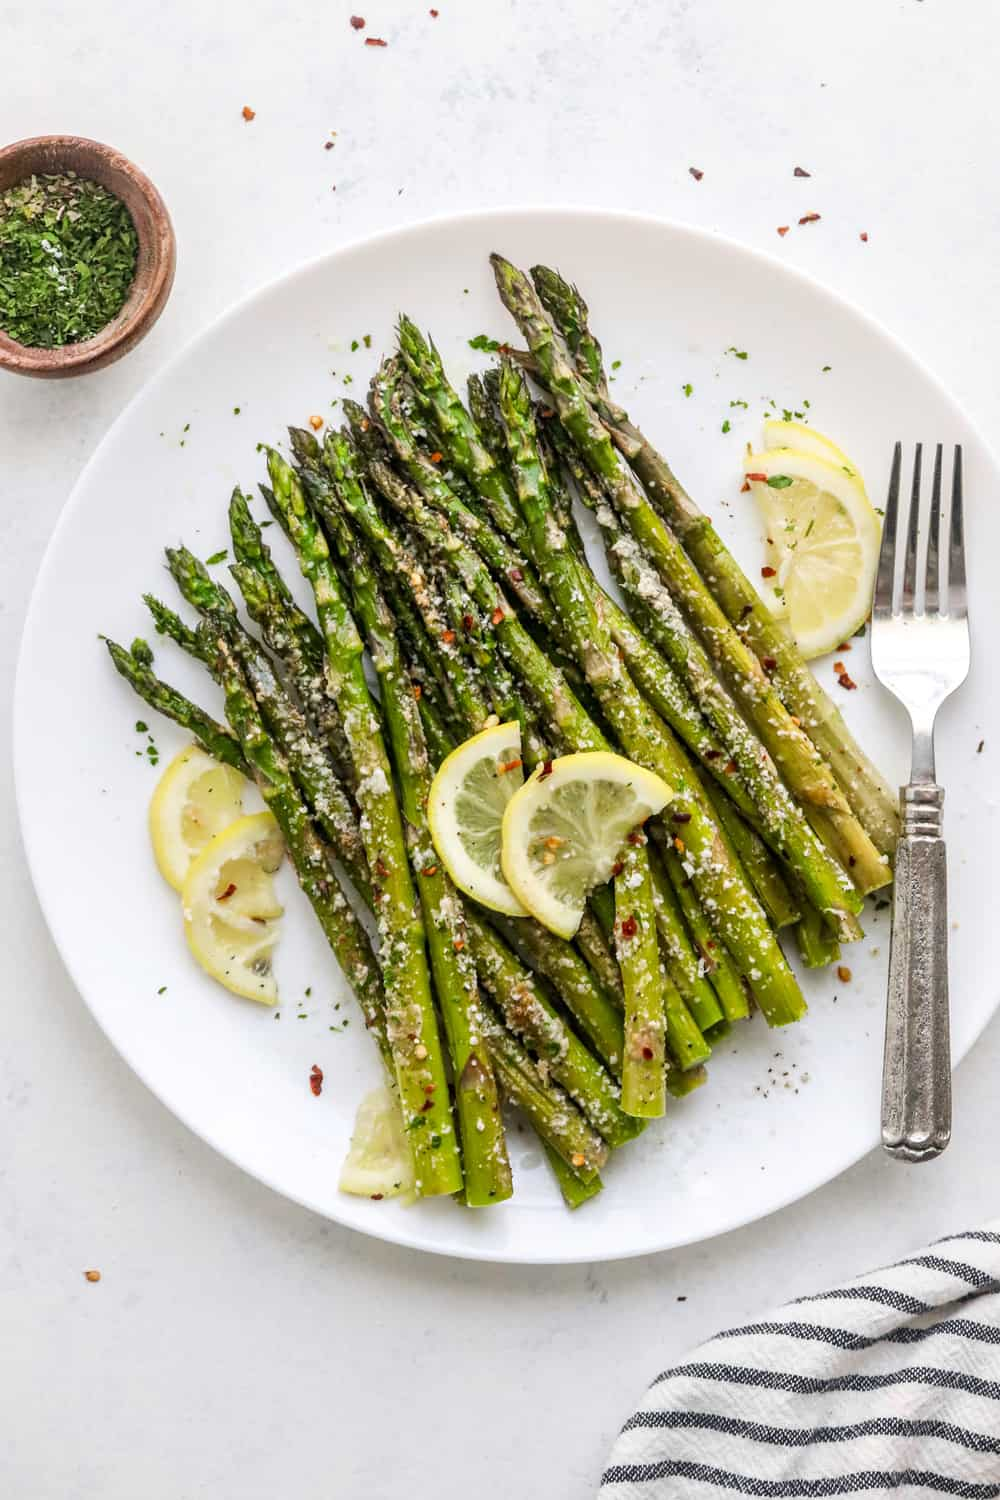 Roasted asparagus with parmesan piled up on a round white plate with sliced lemon in it and a silver fork next to it.